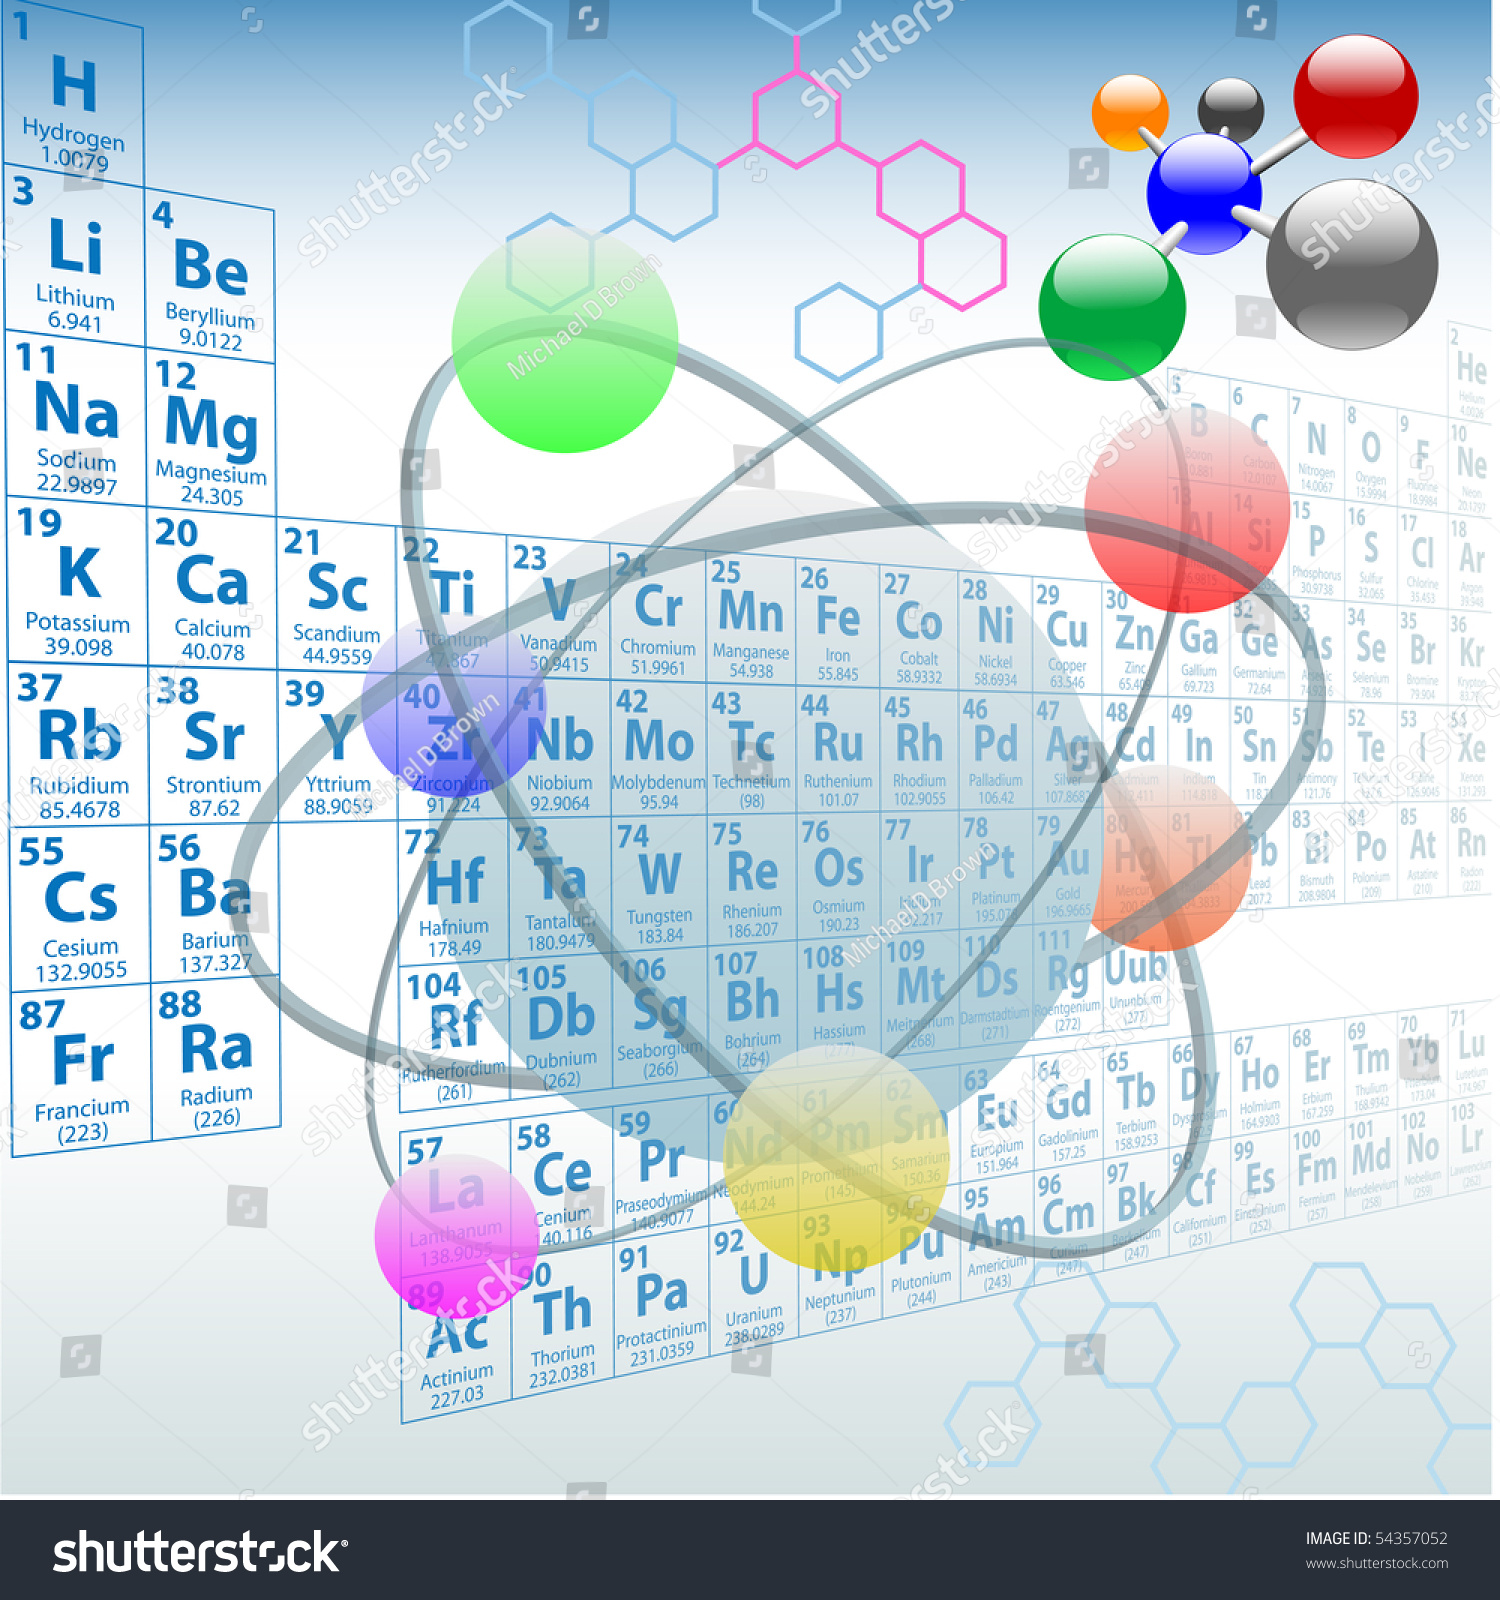 Atomic elements periodic table atoms molecules stock vector atomic elements periodic table atoms molecules chemistry design gamestrikefo Image collections